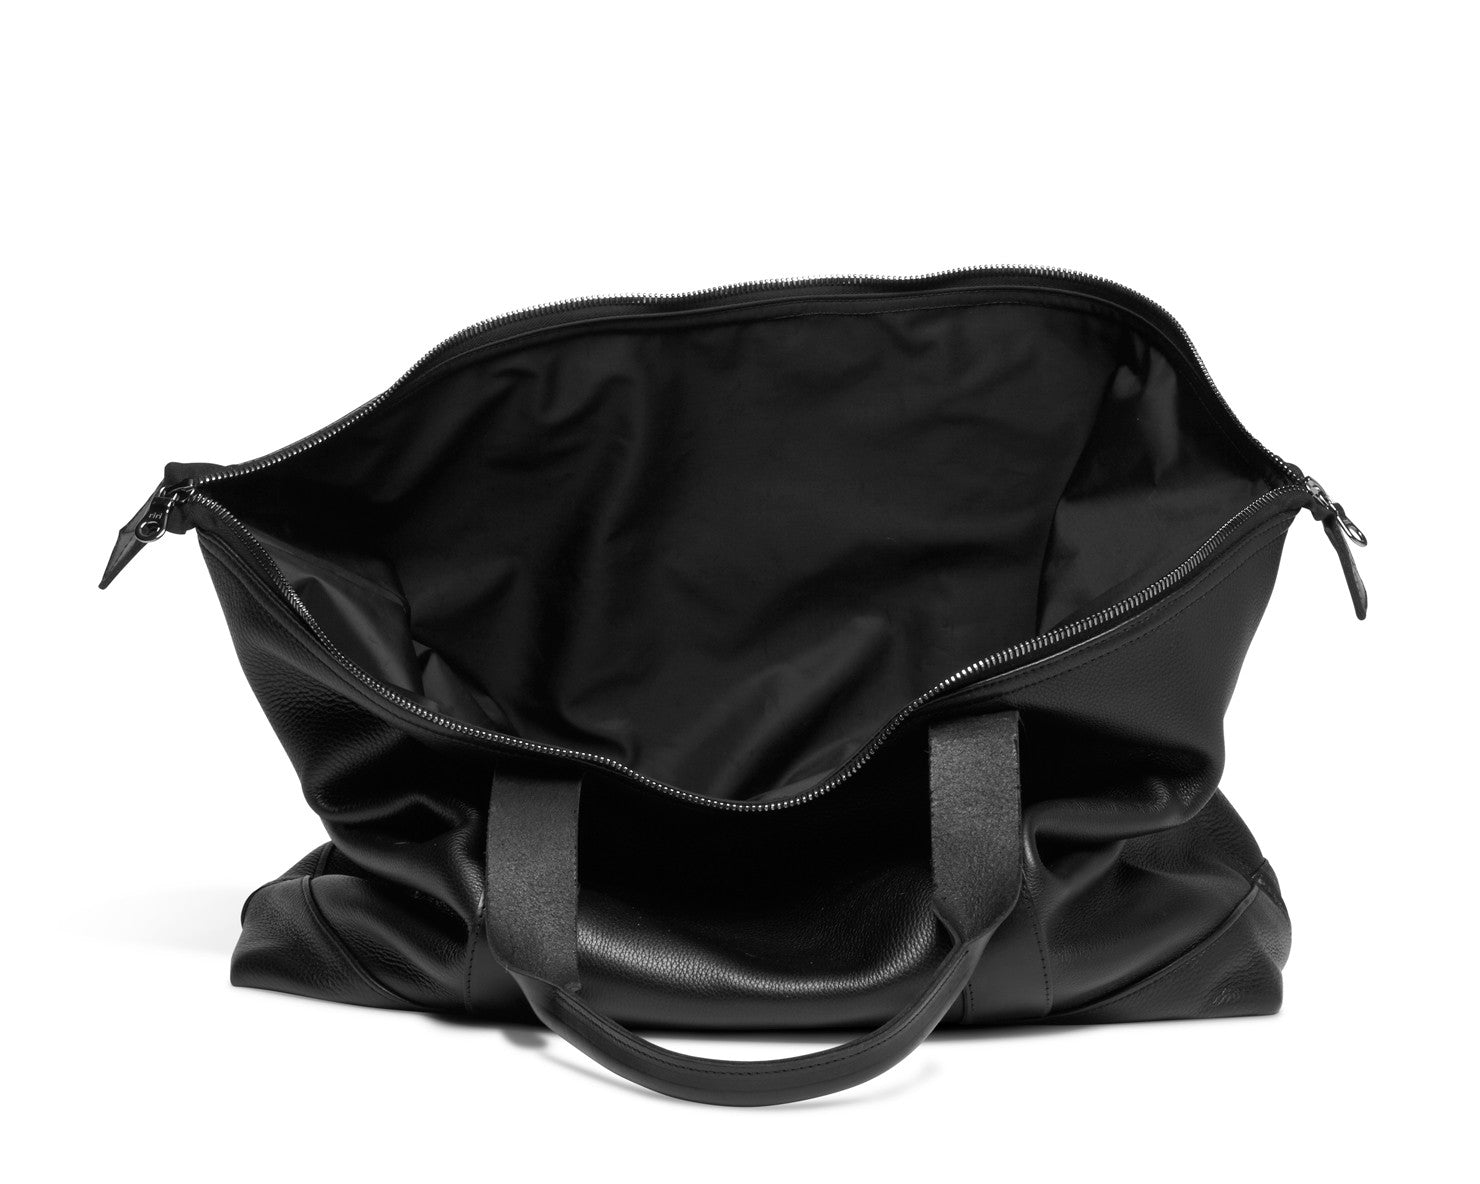 TRAVEL TOTE | KILLSPENCER® - Black Leather